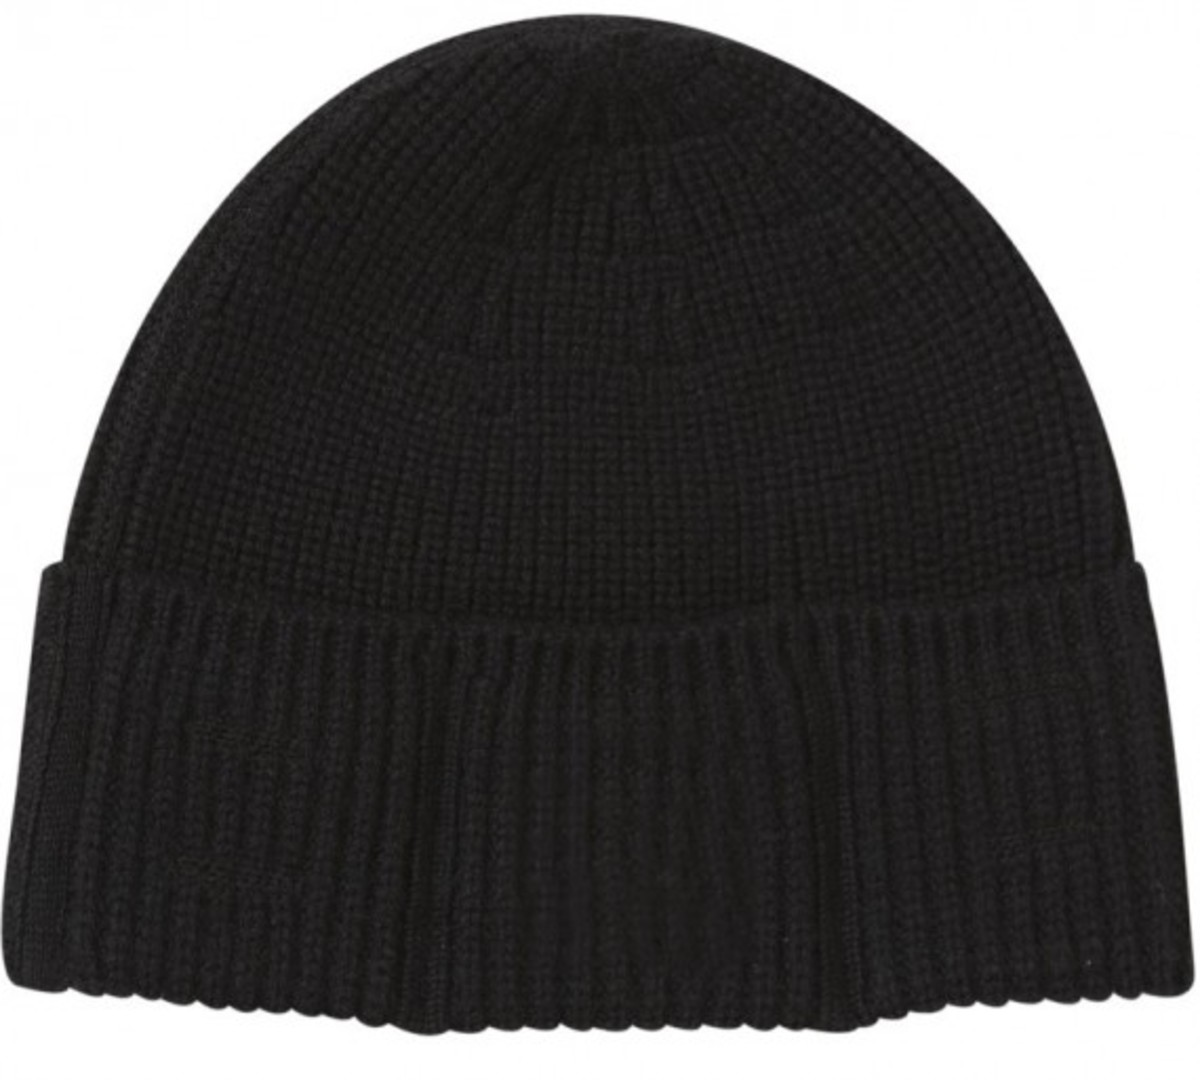 stussy-fall-2011-surplus-collection-surplus-stitch-cuff-hat-02